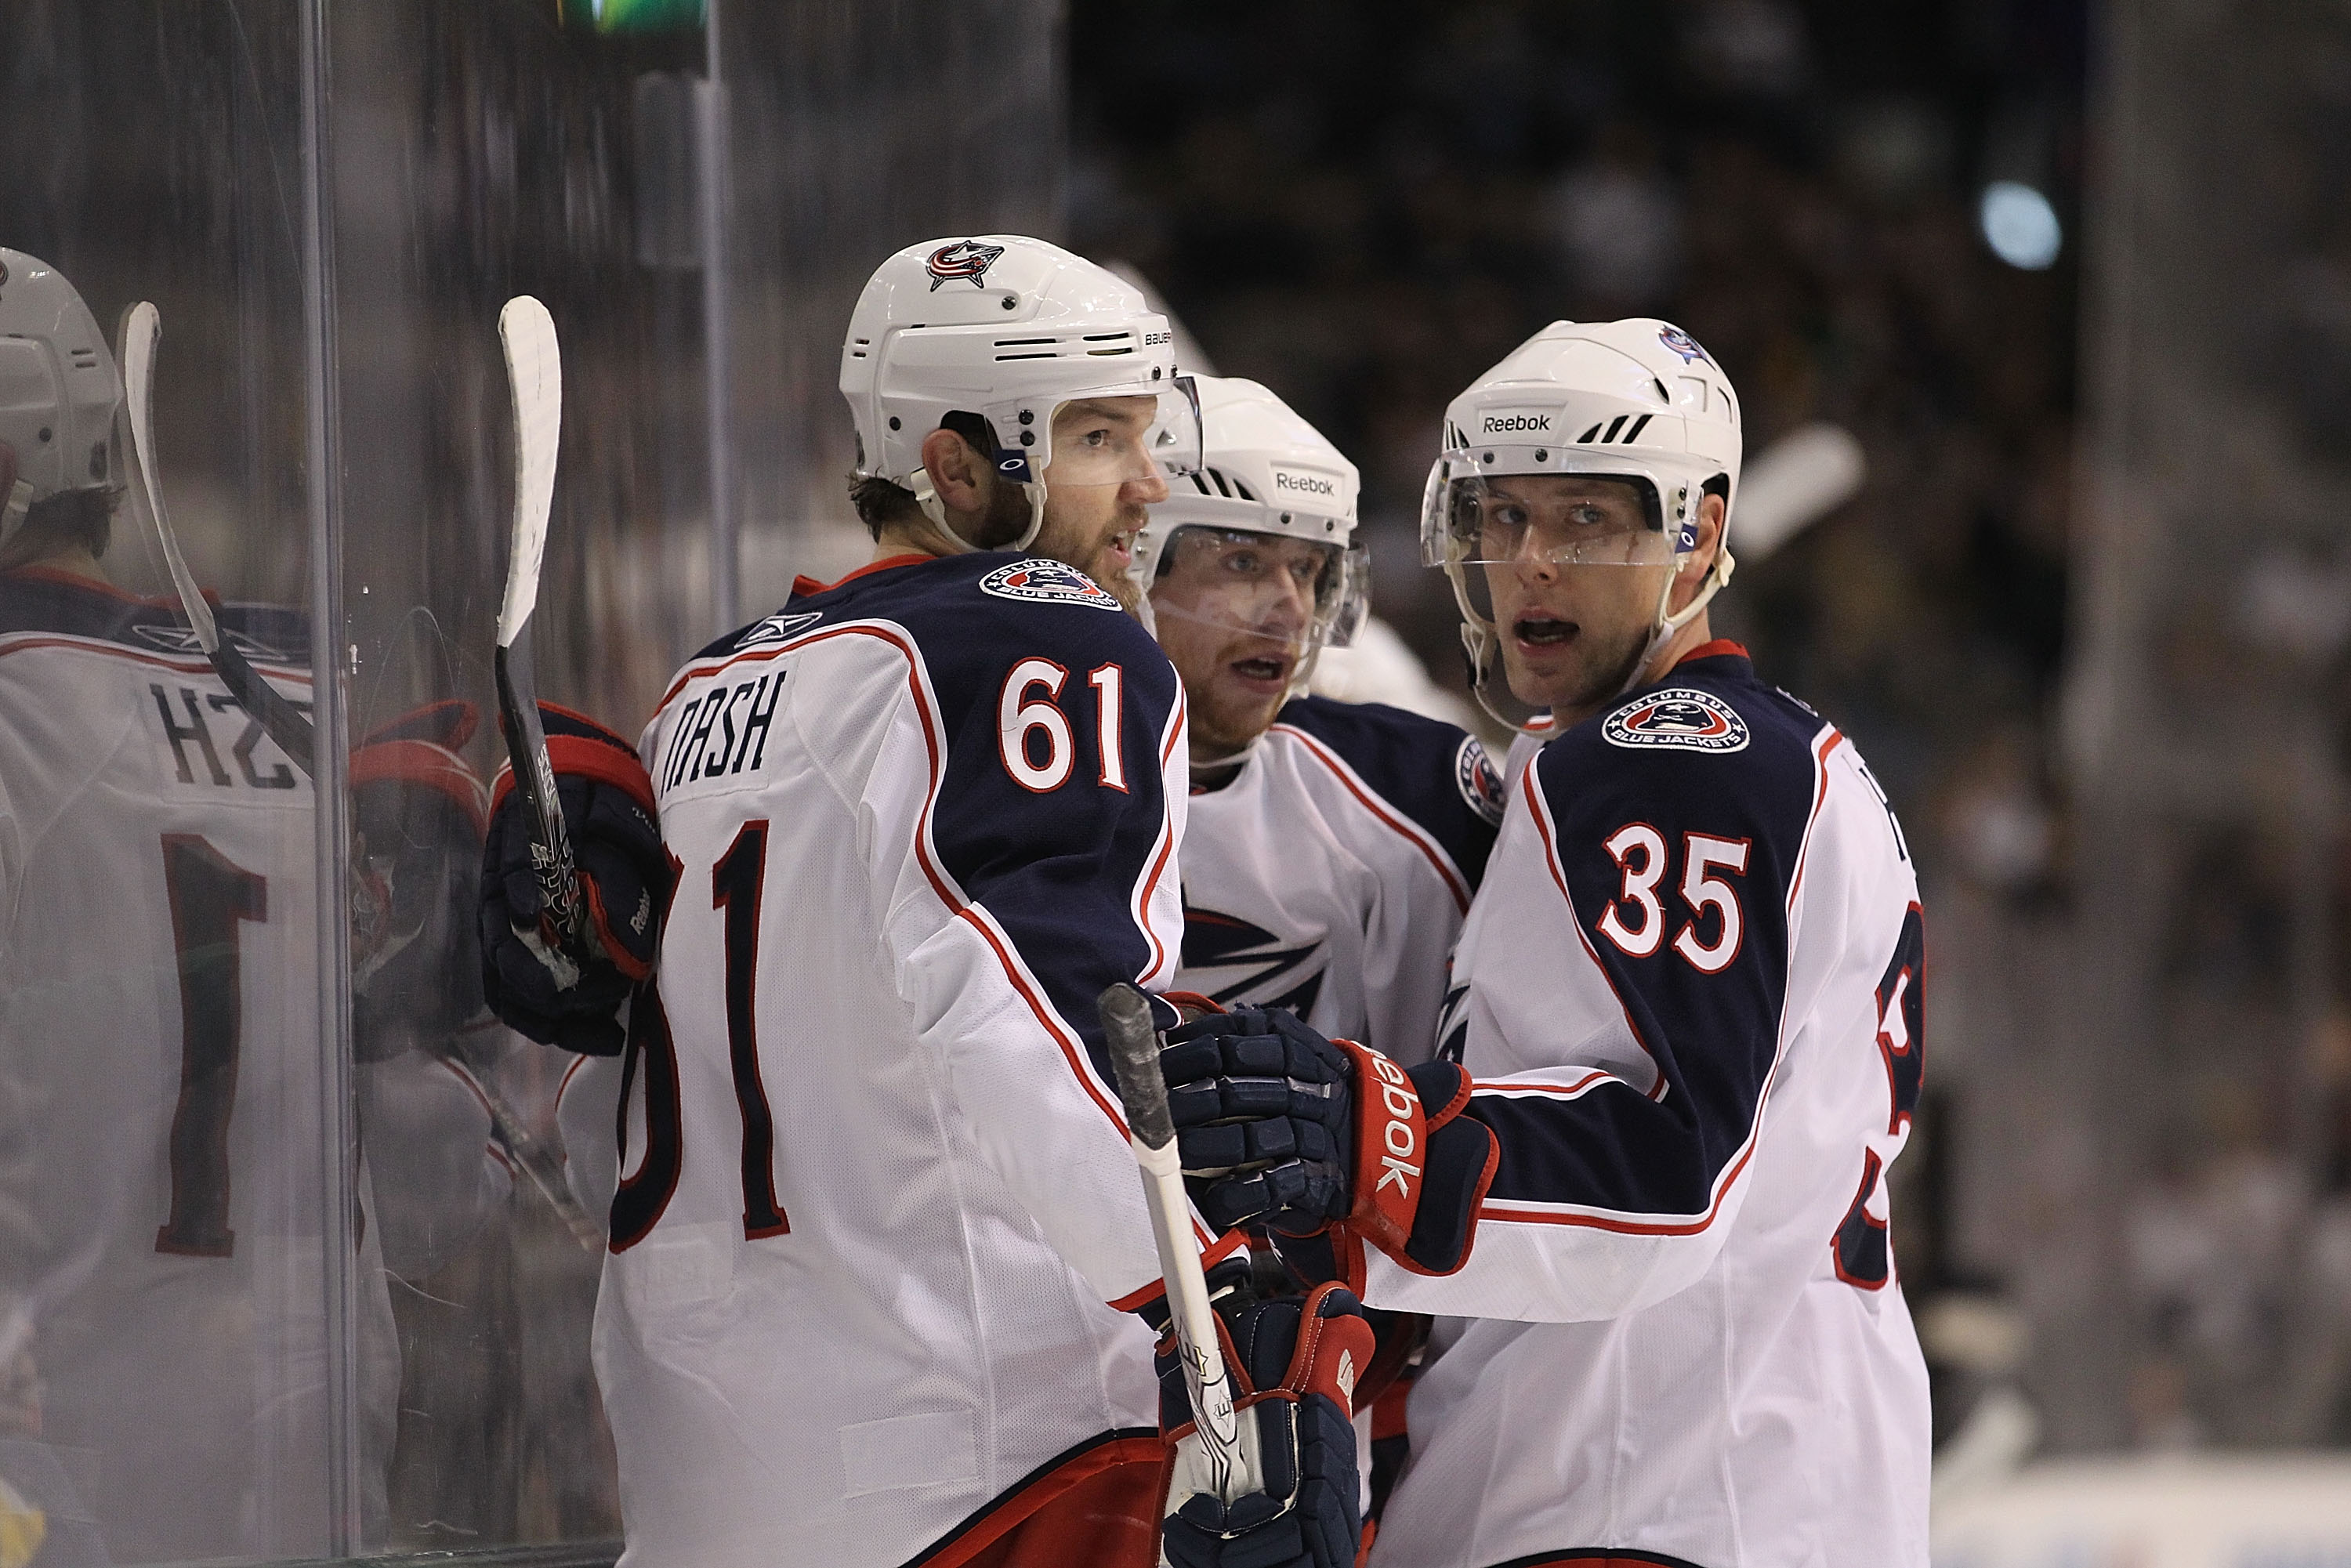 DALLAS, TX - FEBRUARY 13:  Right wing Rick Nash #61 of the Columbus Blue Jackets celebrates a goal with Jan Hejda #35 against the Dallas Stars on February 13, 2011 in Dallas, Texas.  (Photo by Ronald Martinez/Getty Images)